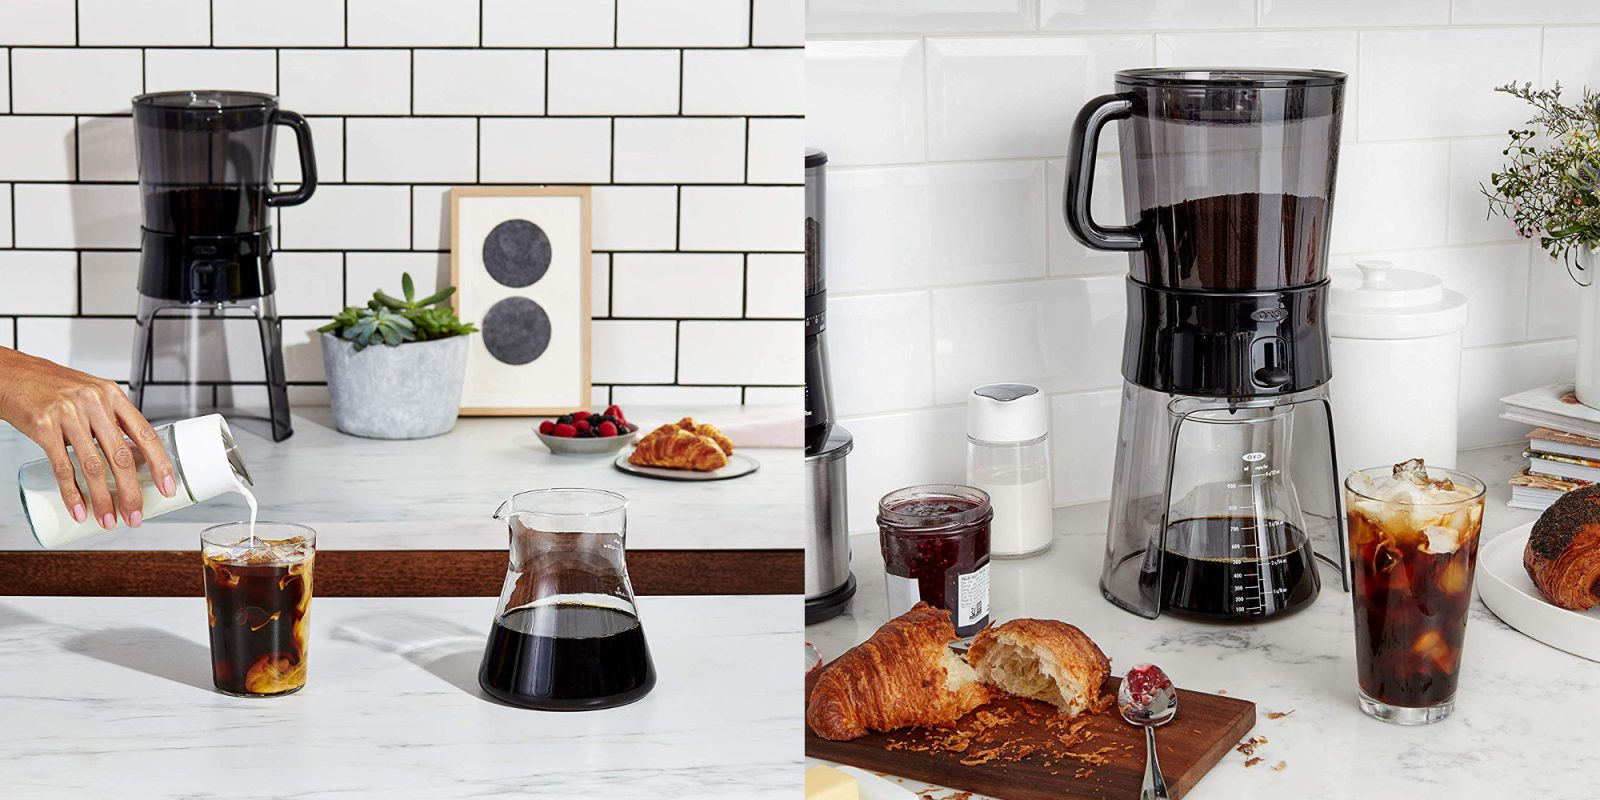 Get your cold brew on with OXO's 32-oz. Coffee Maker at $40 shipped (20% off)